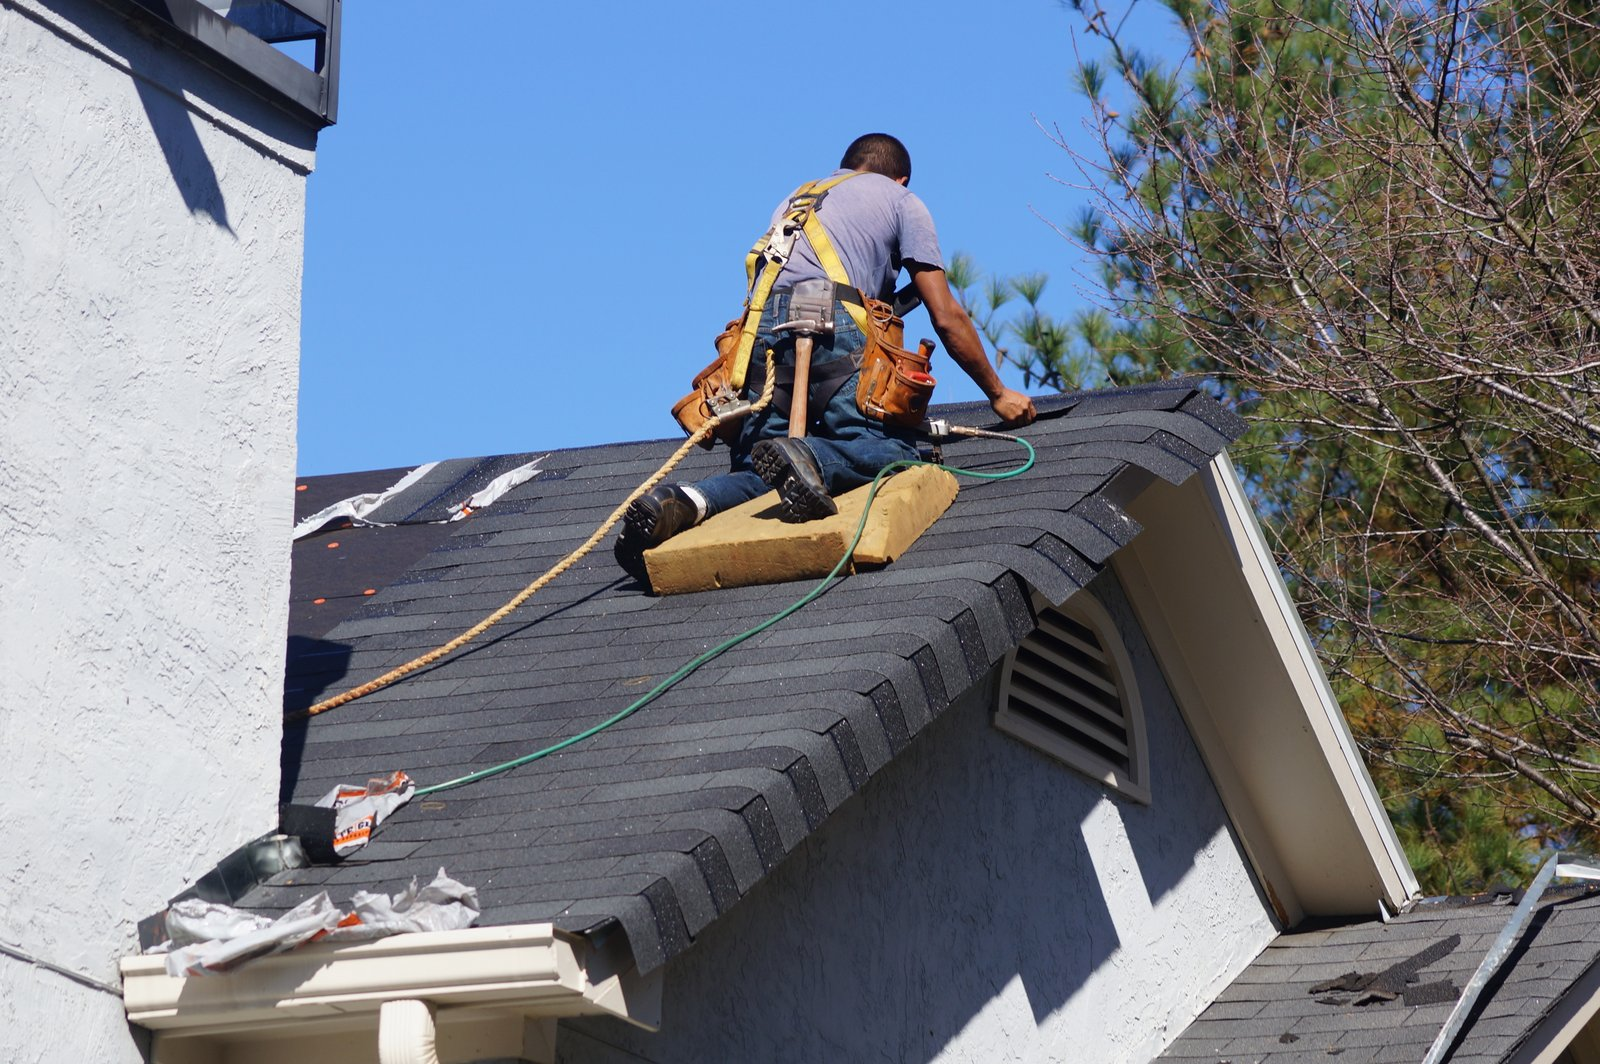 Flat Roofing Contractors Near Me Dripping springs, TX 78620